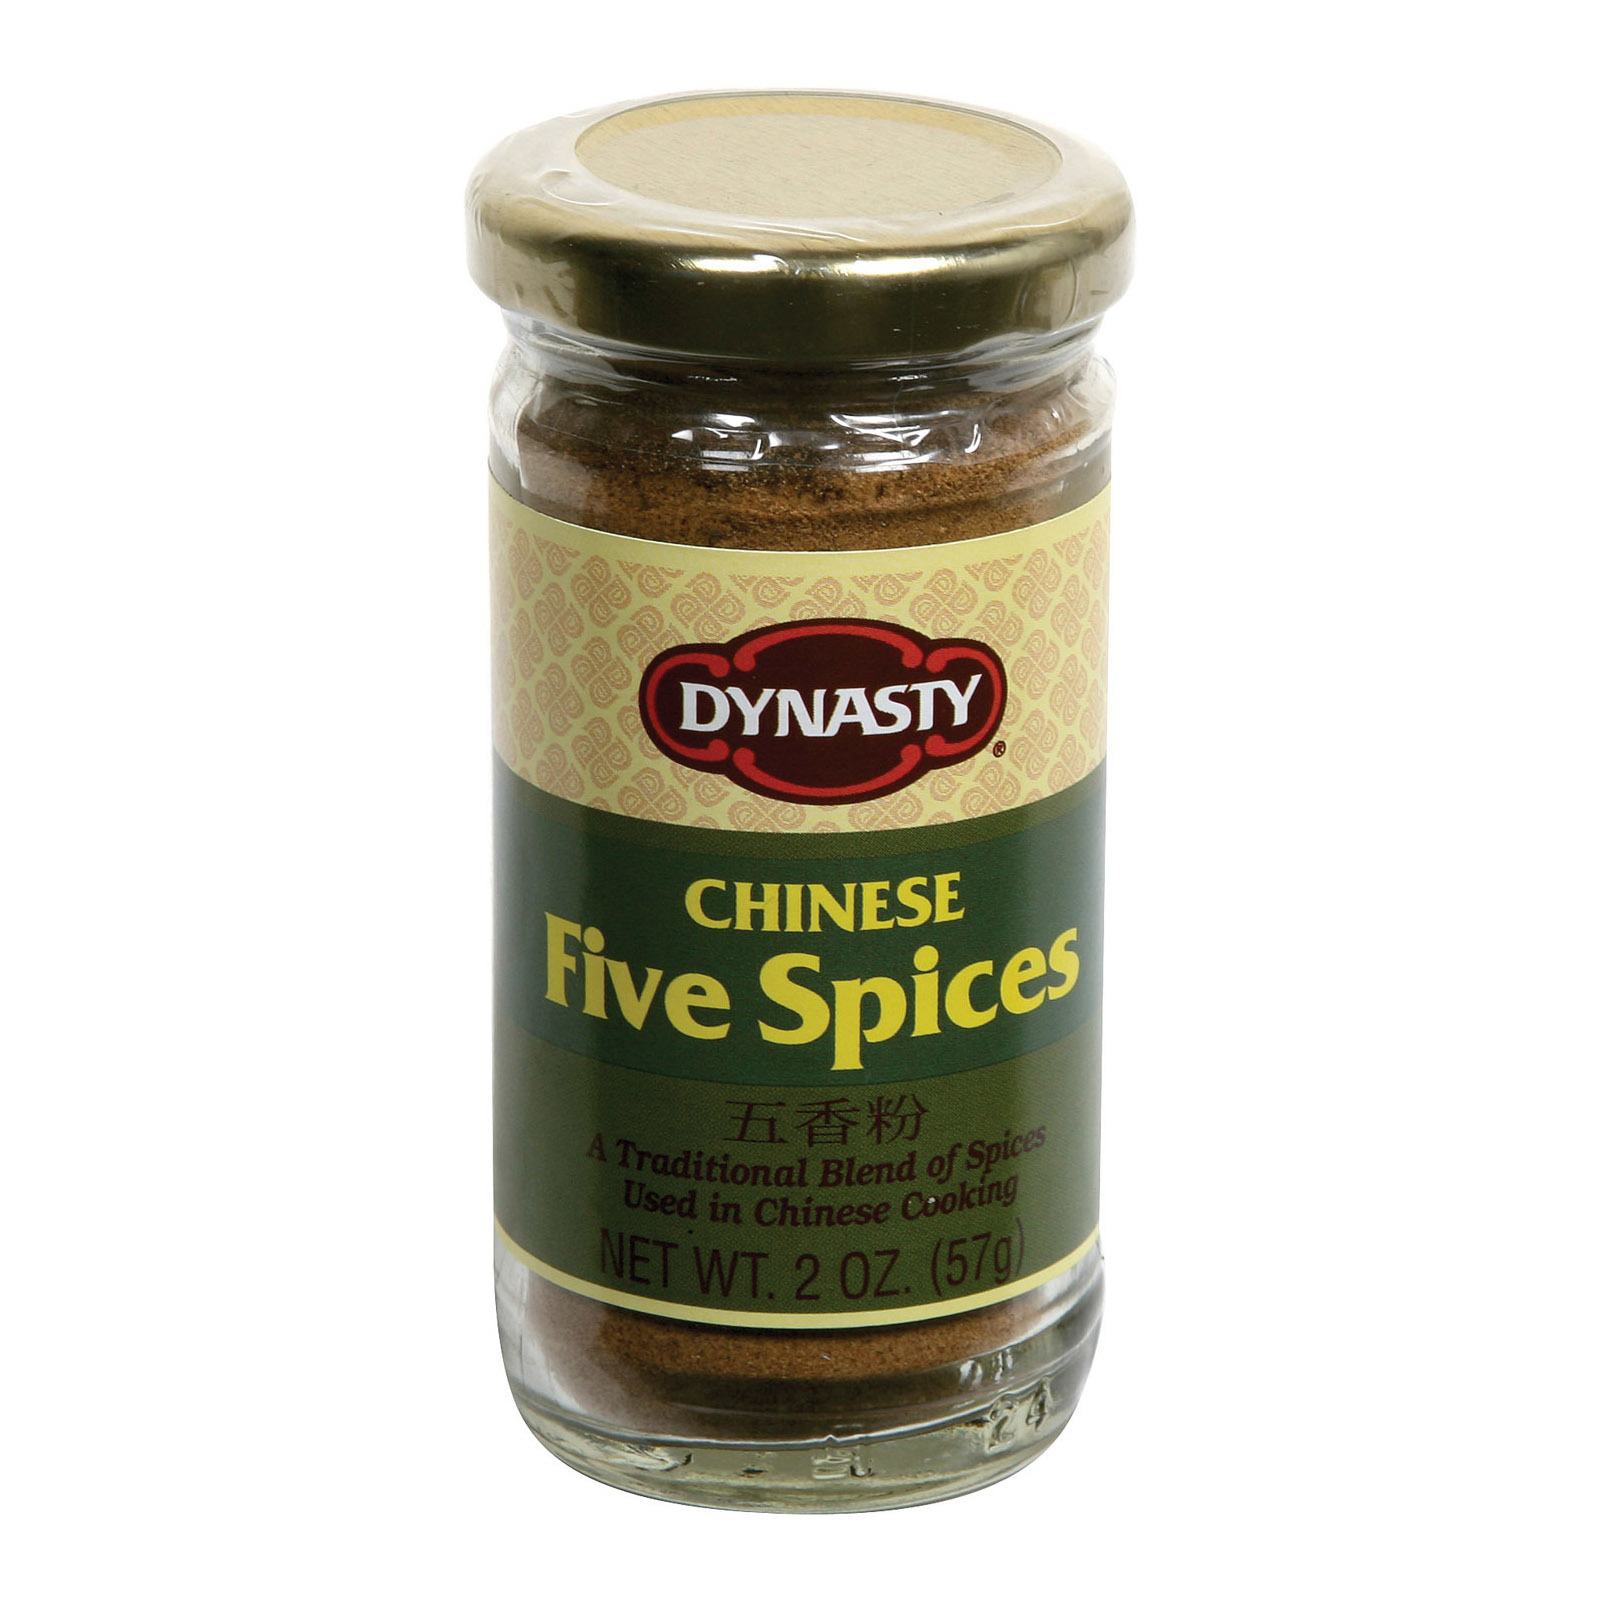 Dynasty Spices - Powdered - Case of 12 - 2 oz